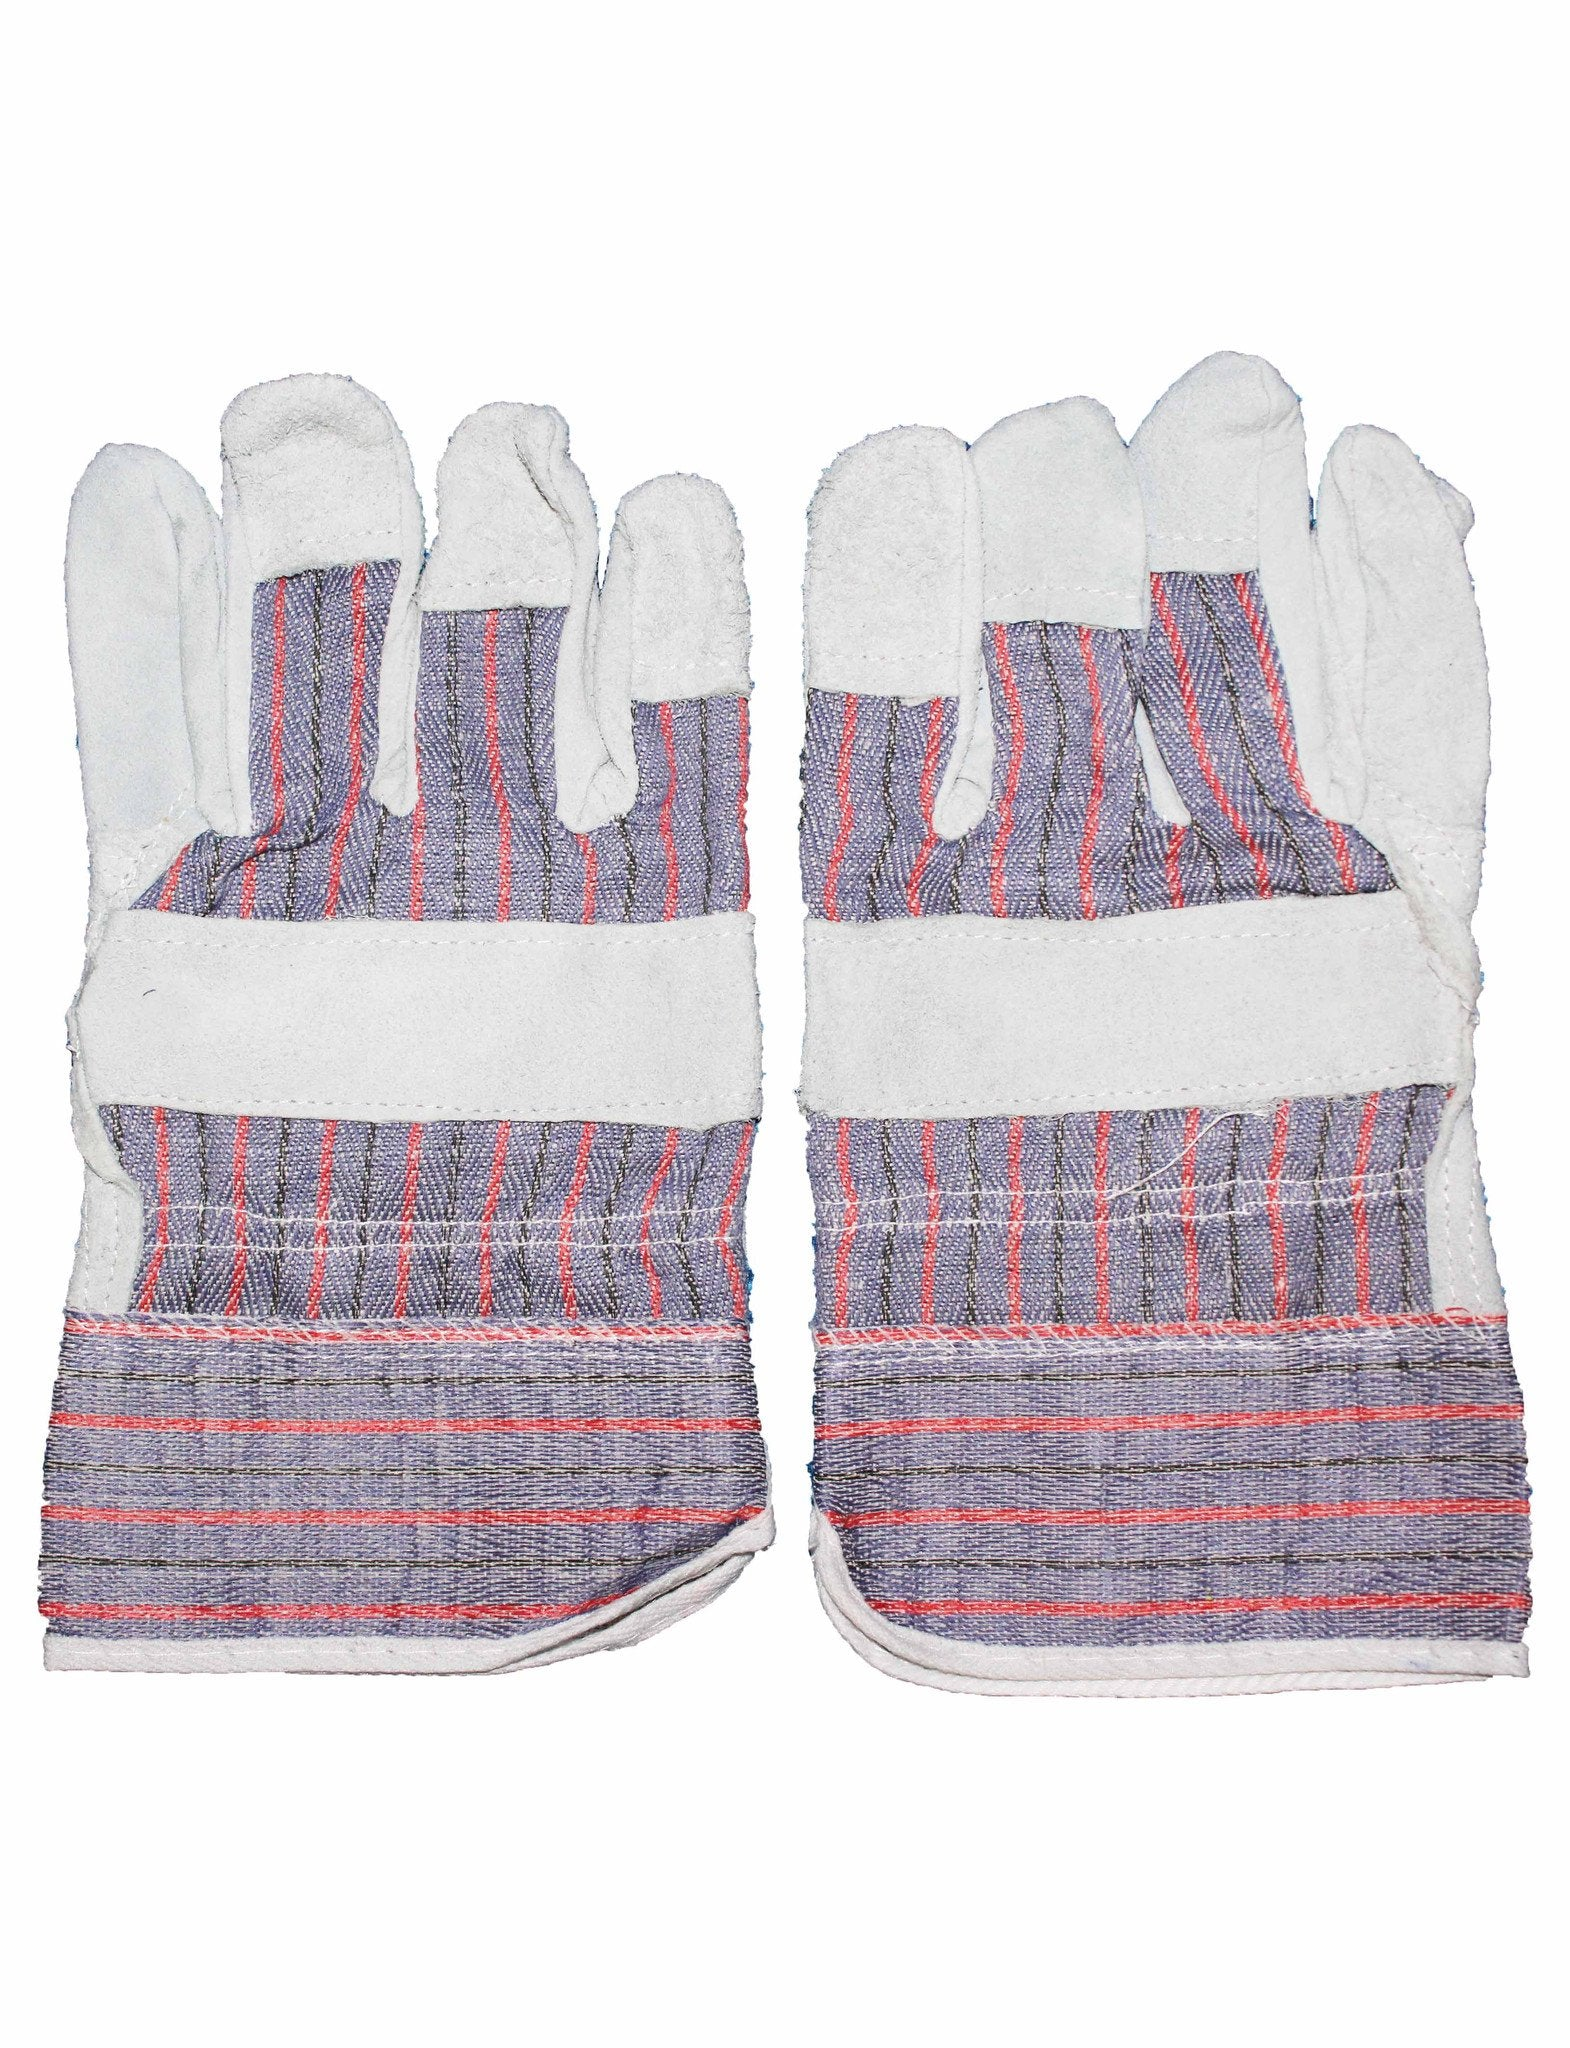 72HRS Leather Palm Work Gloves (pair)